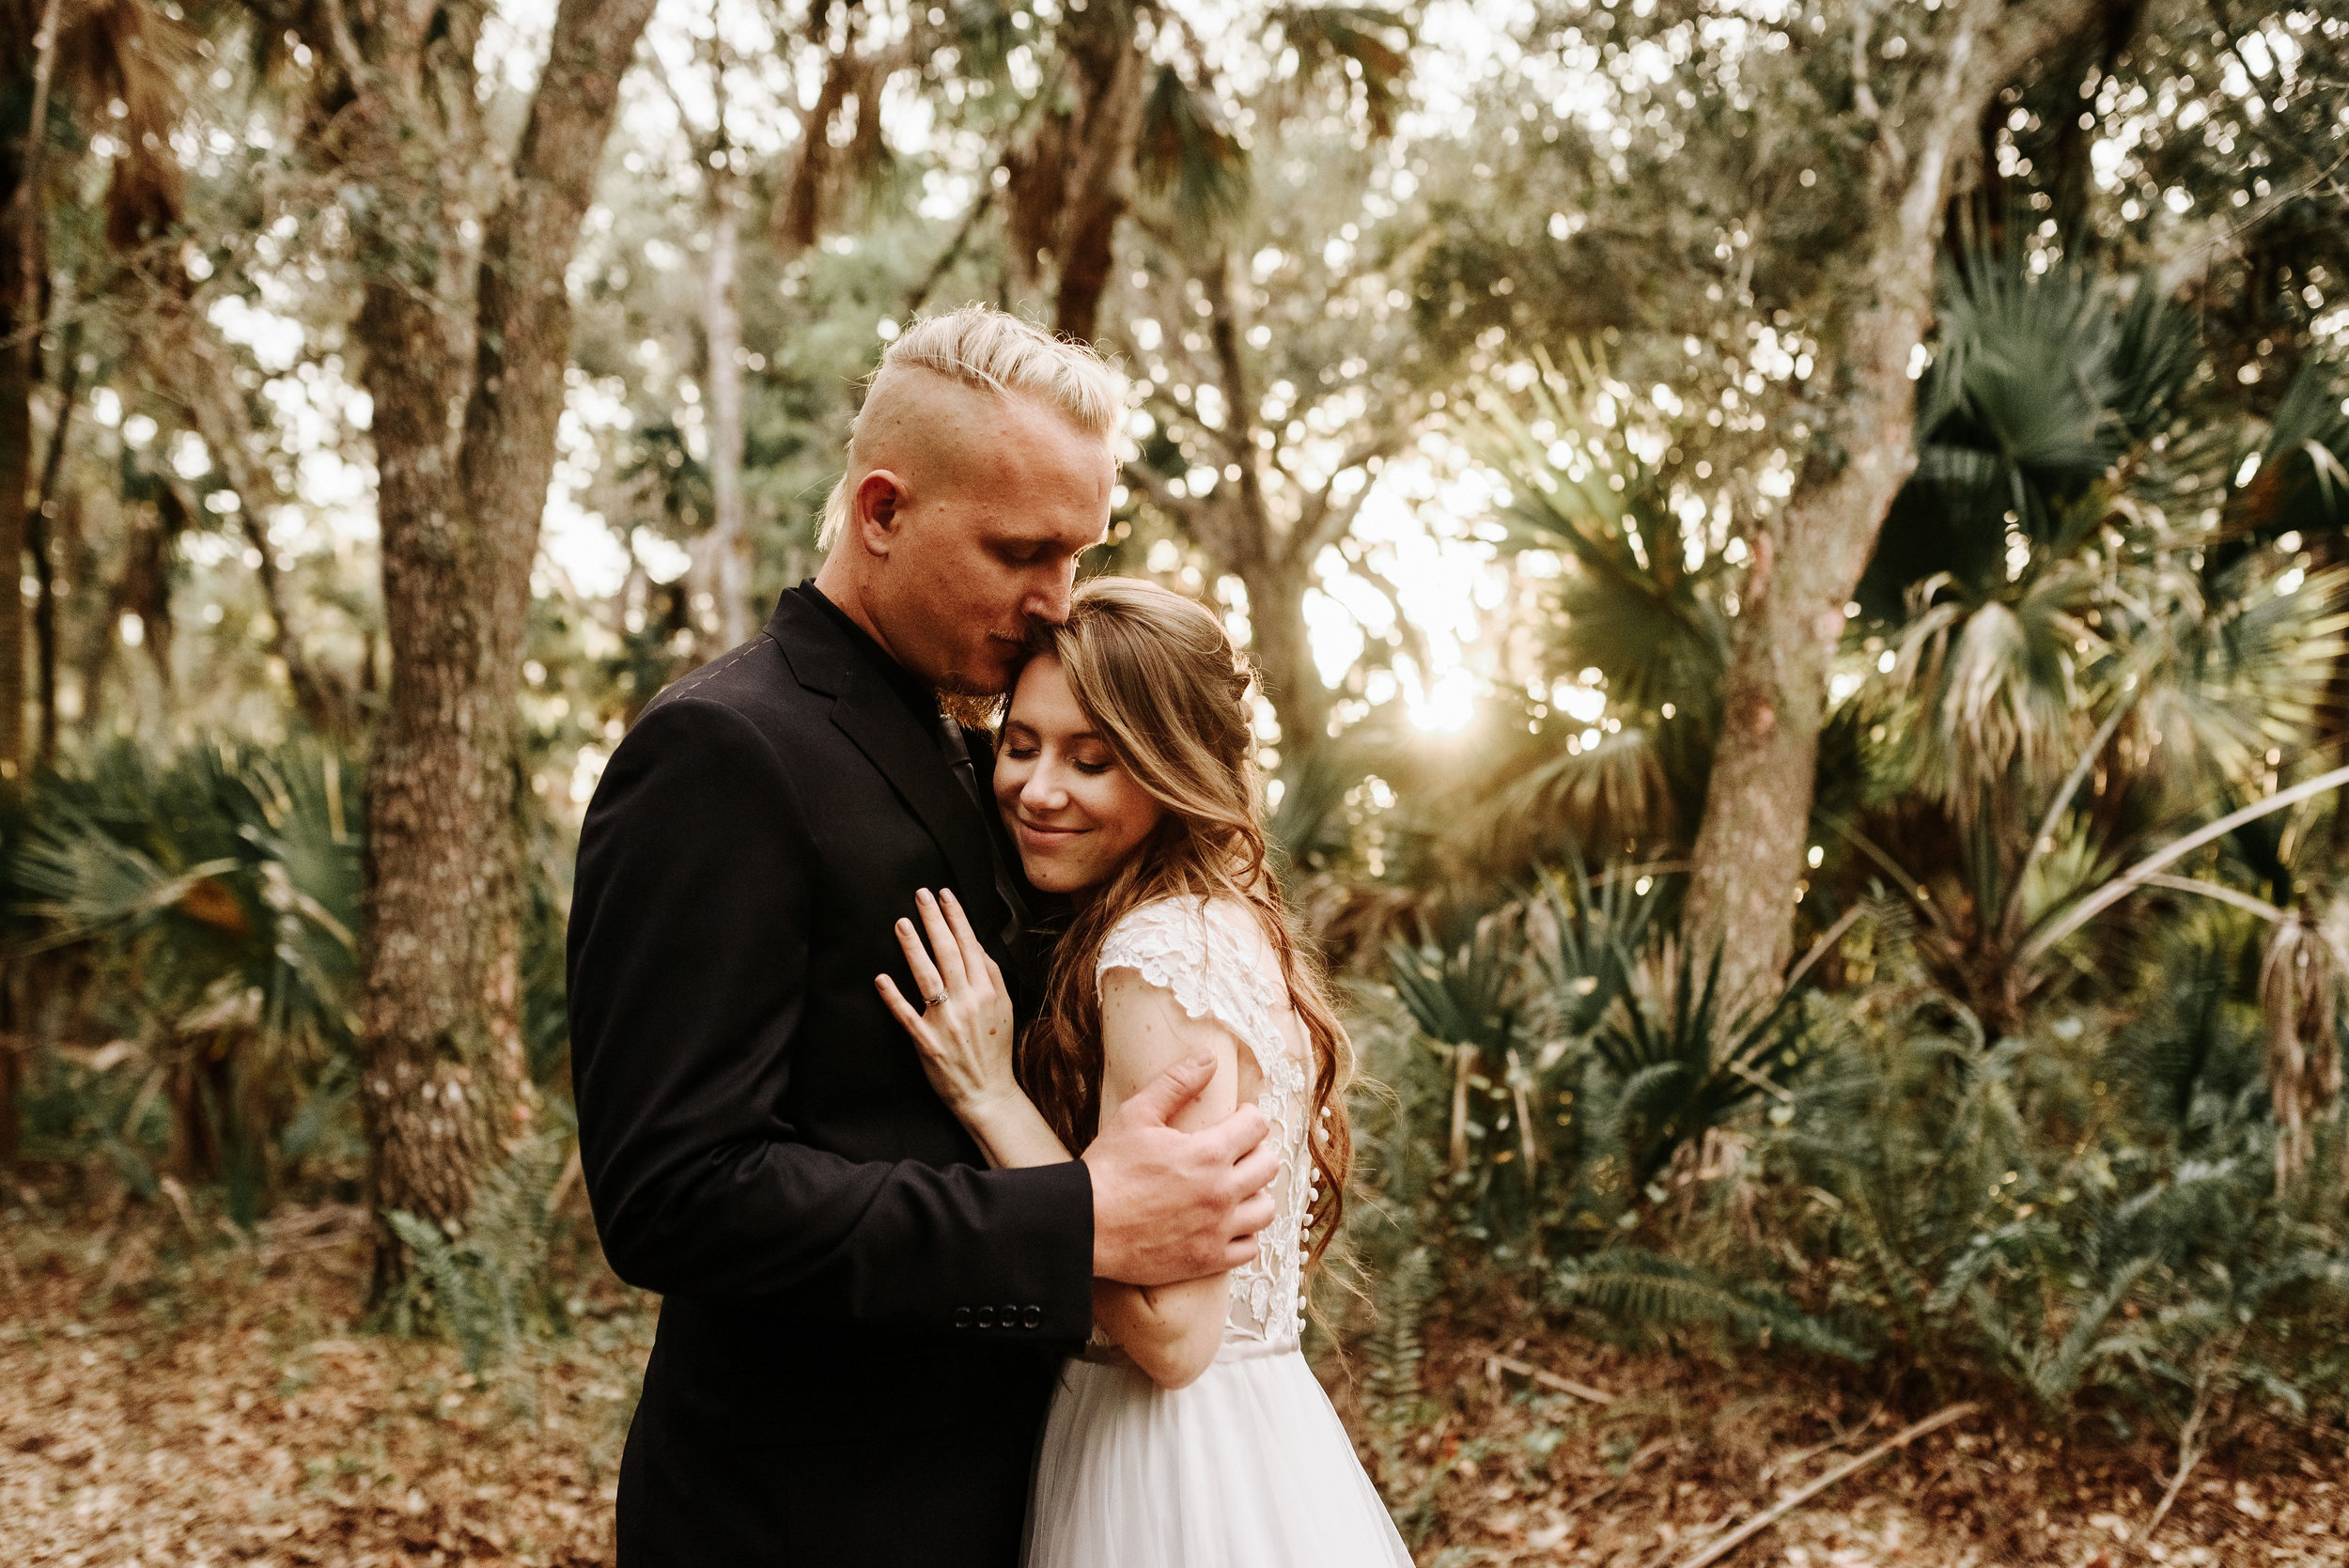 Jess_Micah_Portrait_Session_Wedding_Vero_Beach_Florida_Photography_by_V_0478.jpg